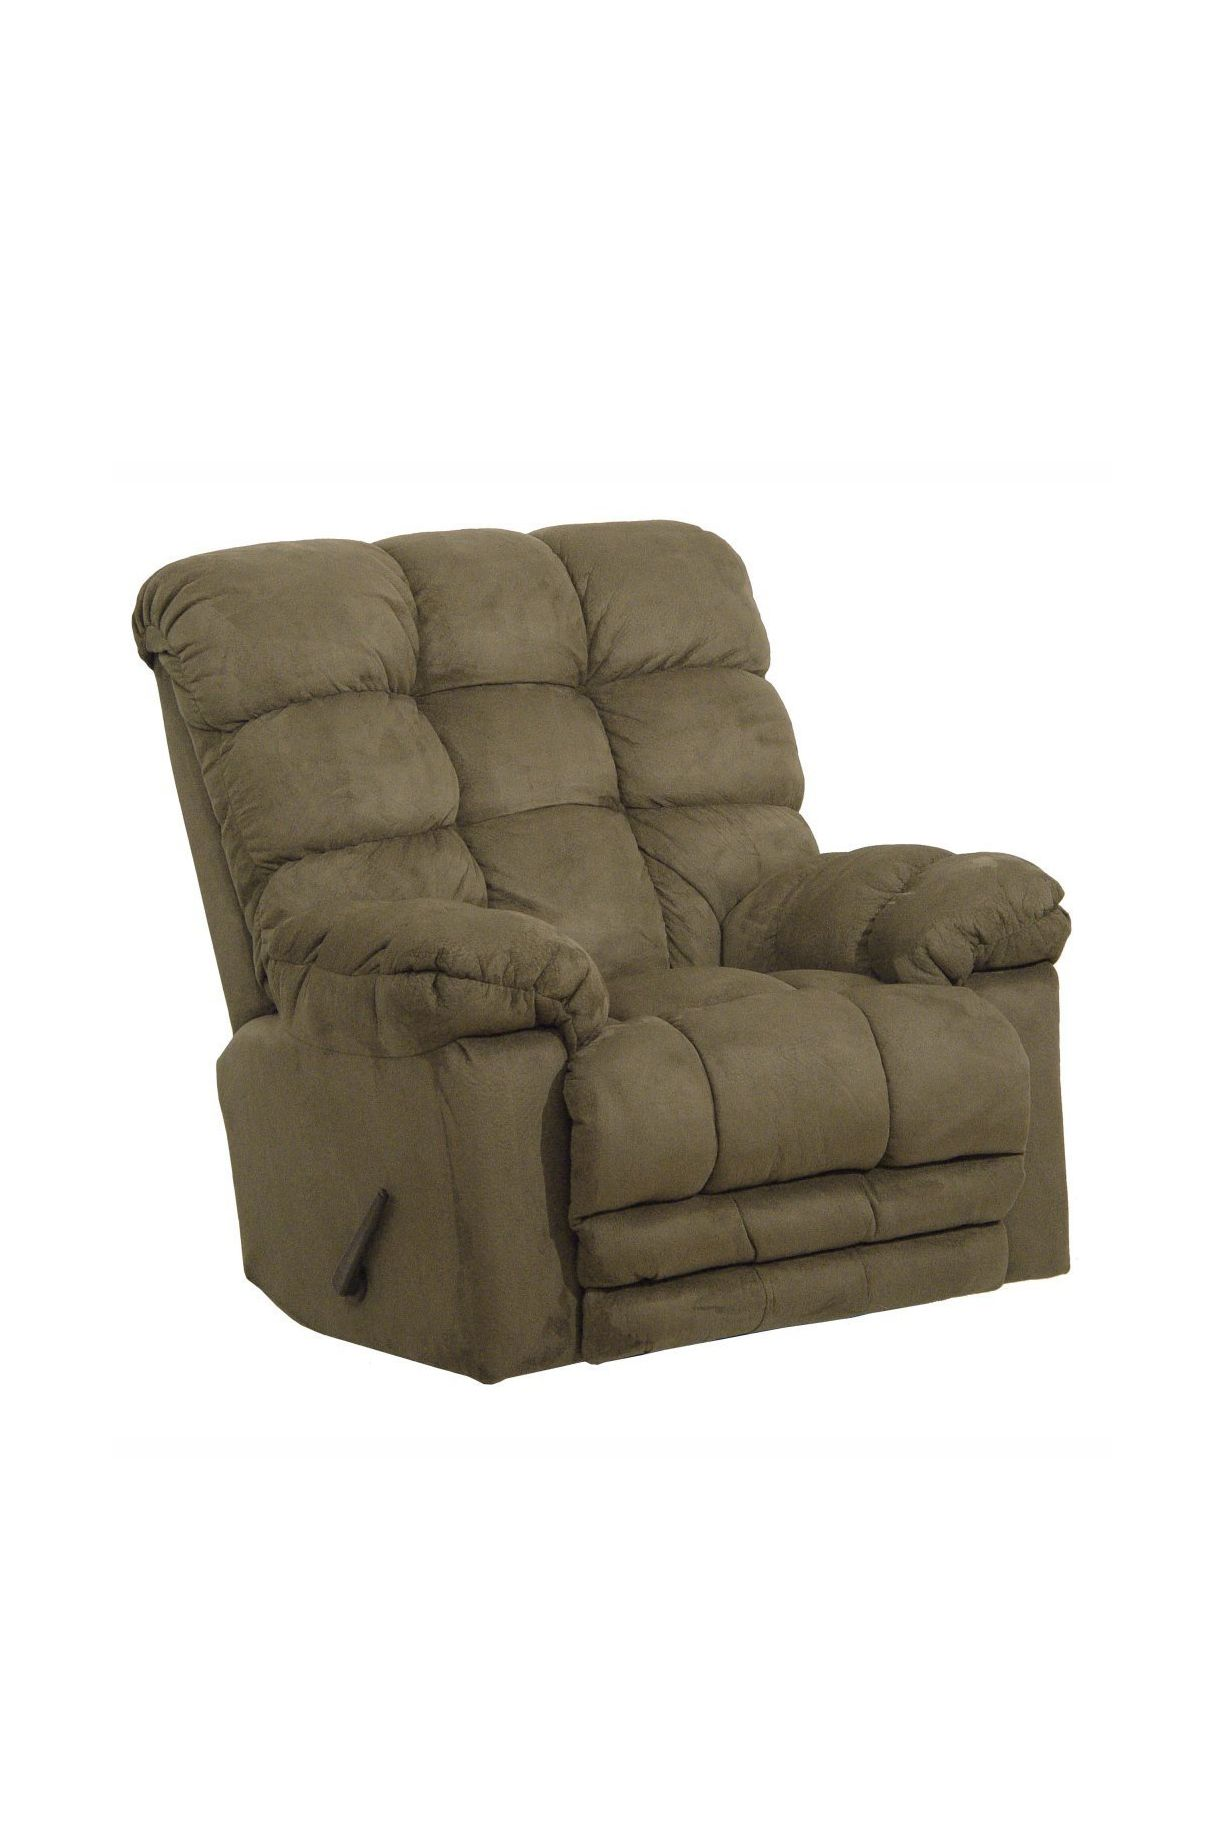 storage with recliner holders ideas furniture holder reclining cup for and image chair popular chairs astonishing sxs